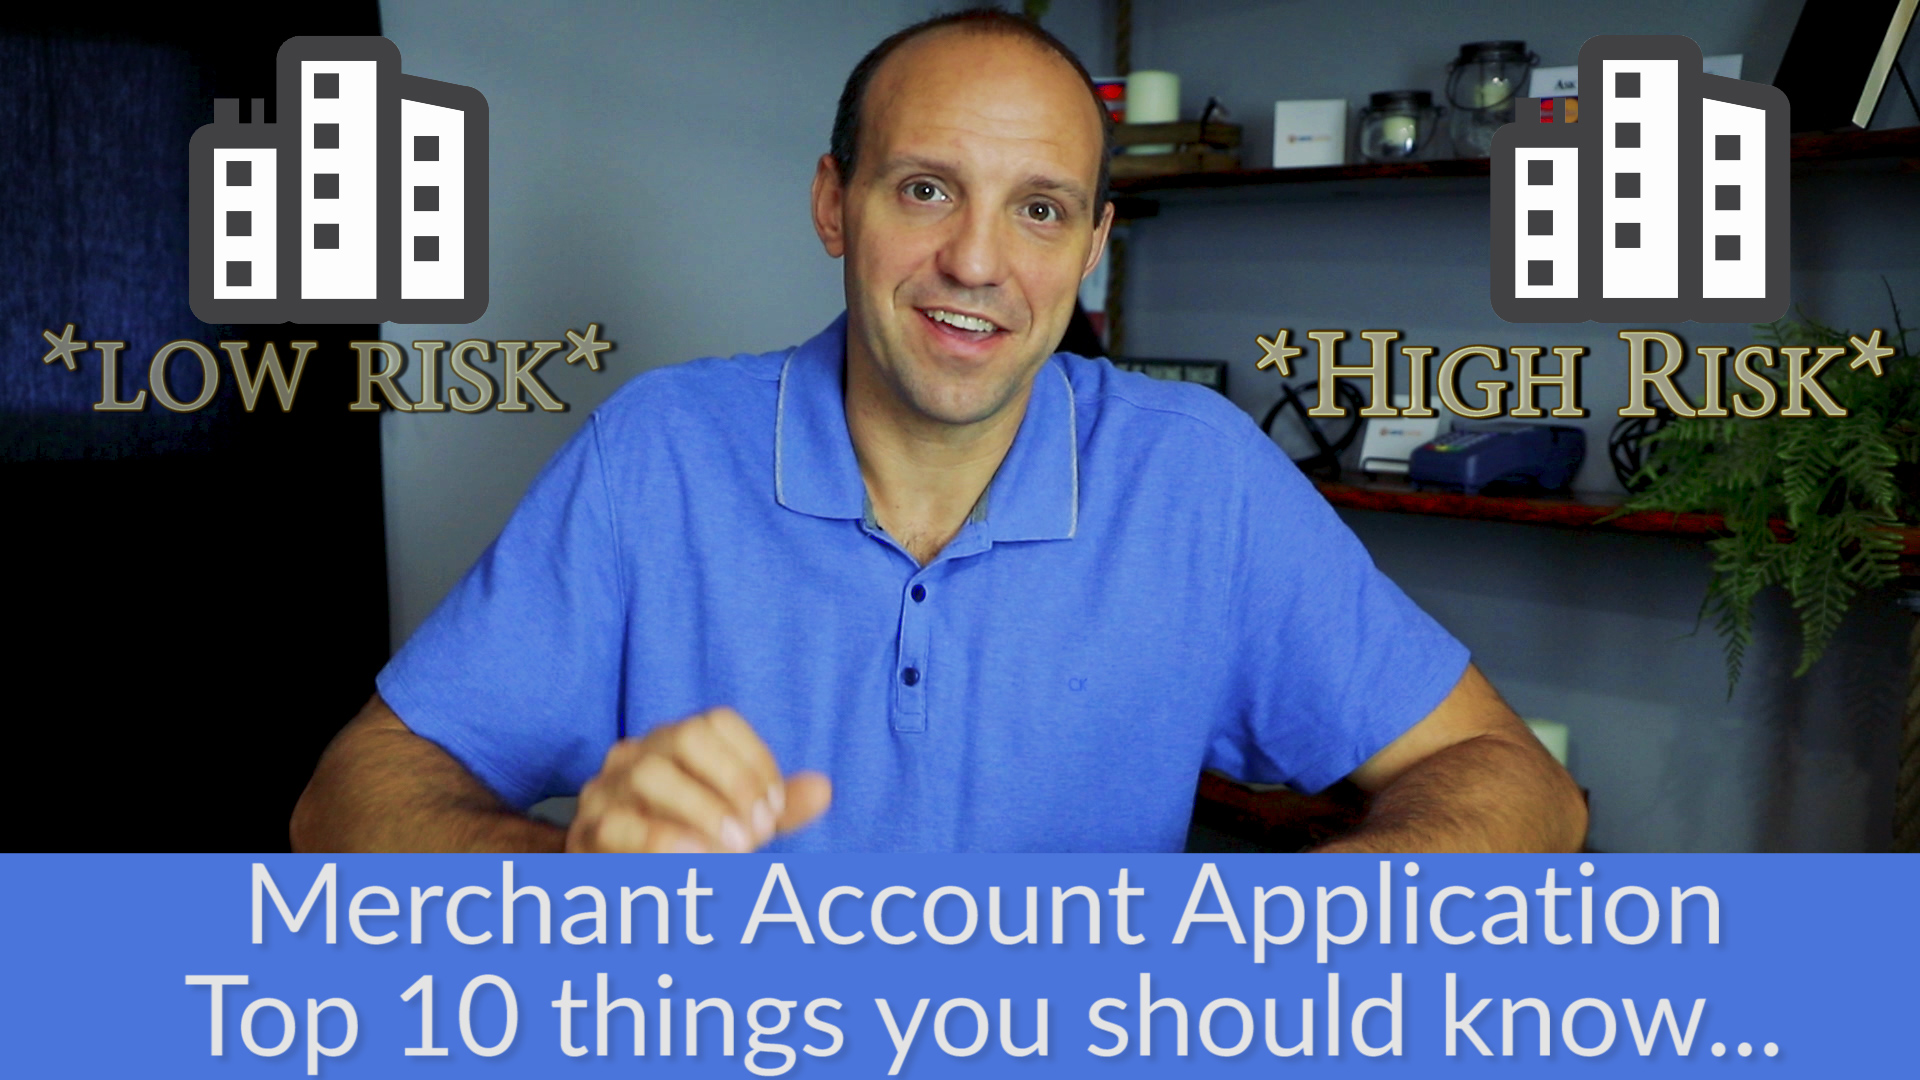 Merchant Account Application – 10 Things You Should Know About Merchant Account Applications